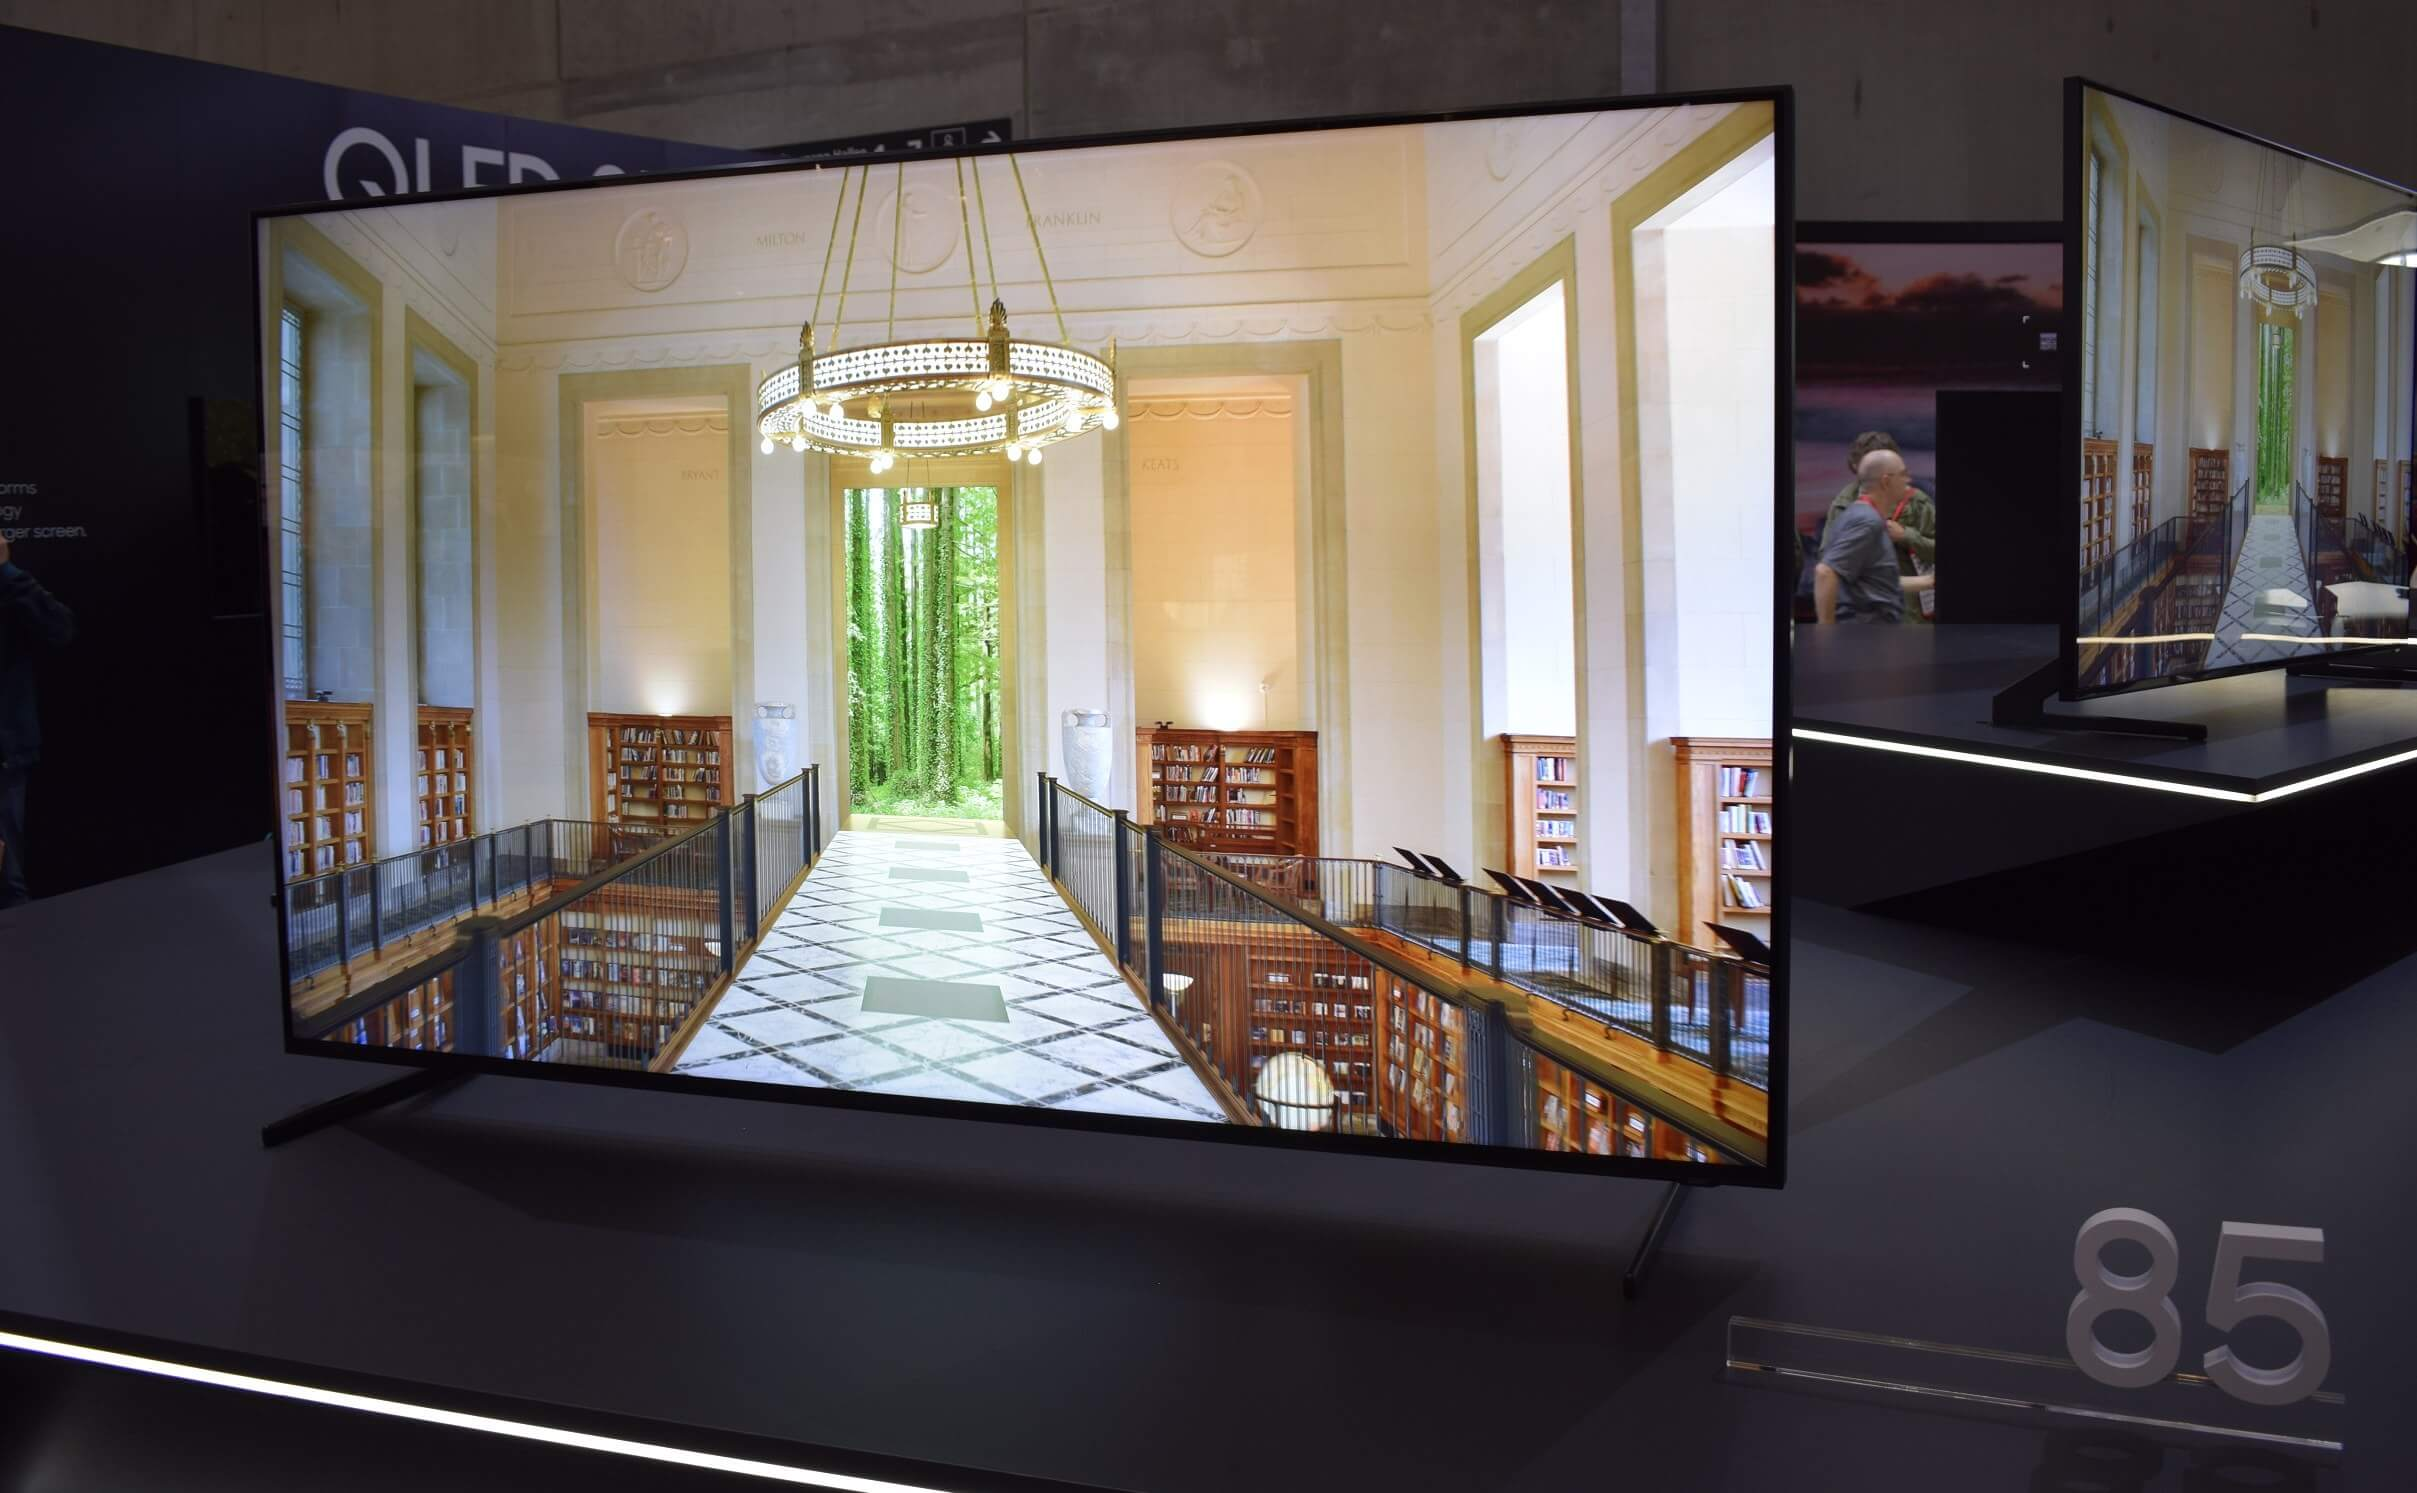 Samsung's 85-inch 8K QLED TV can now be pre-ordered for